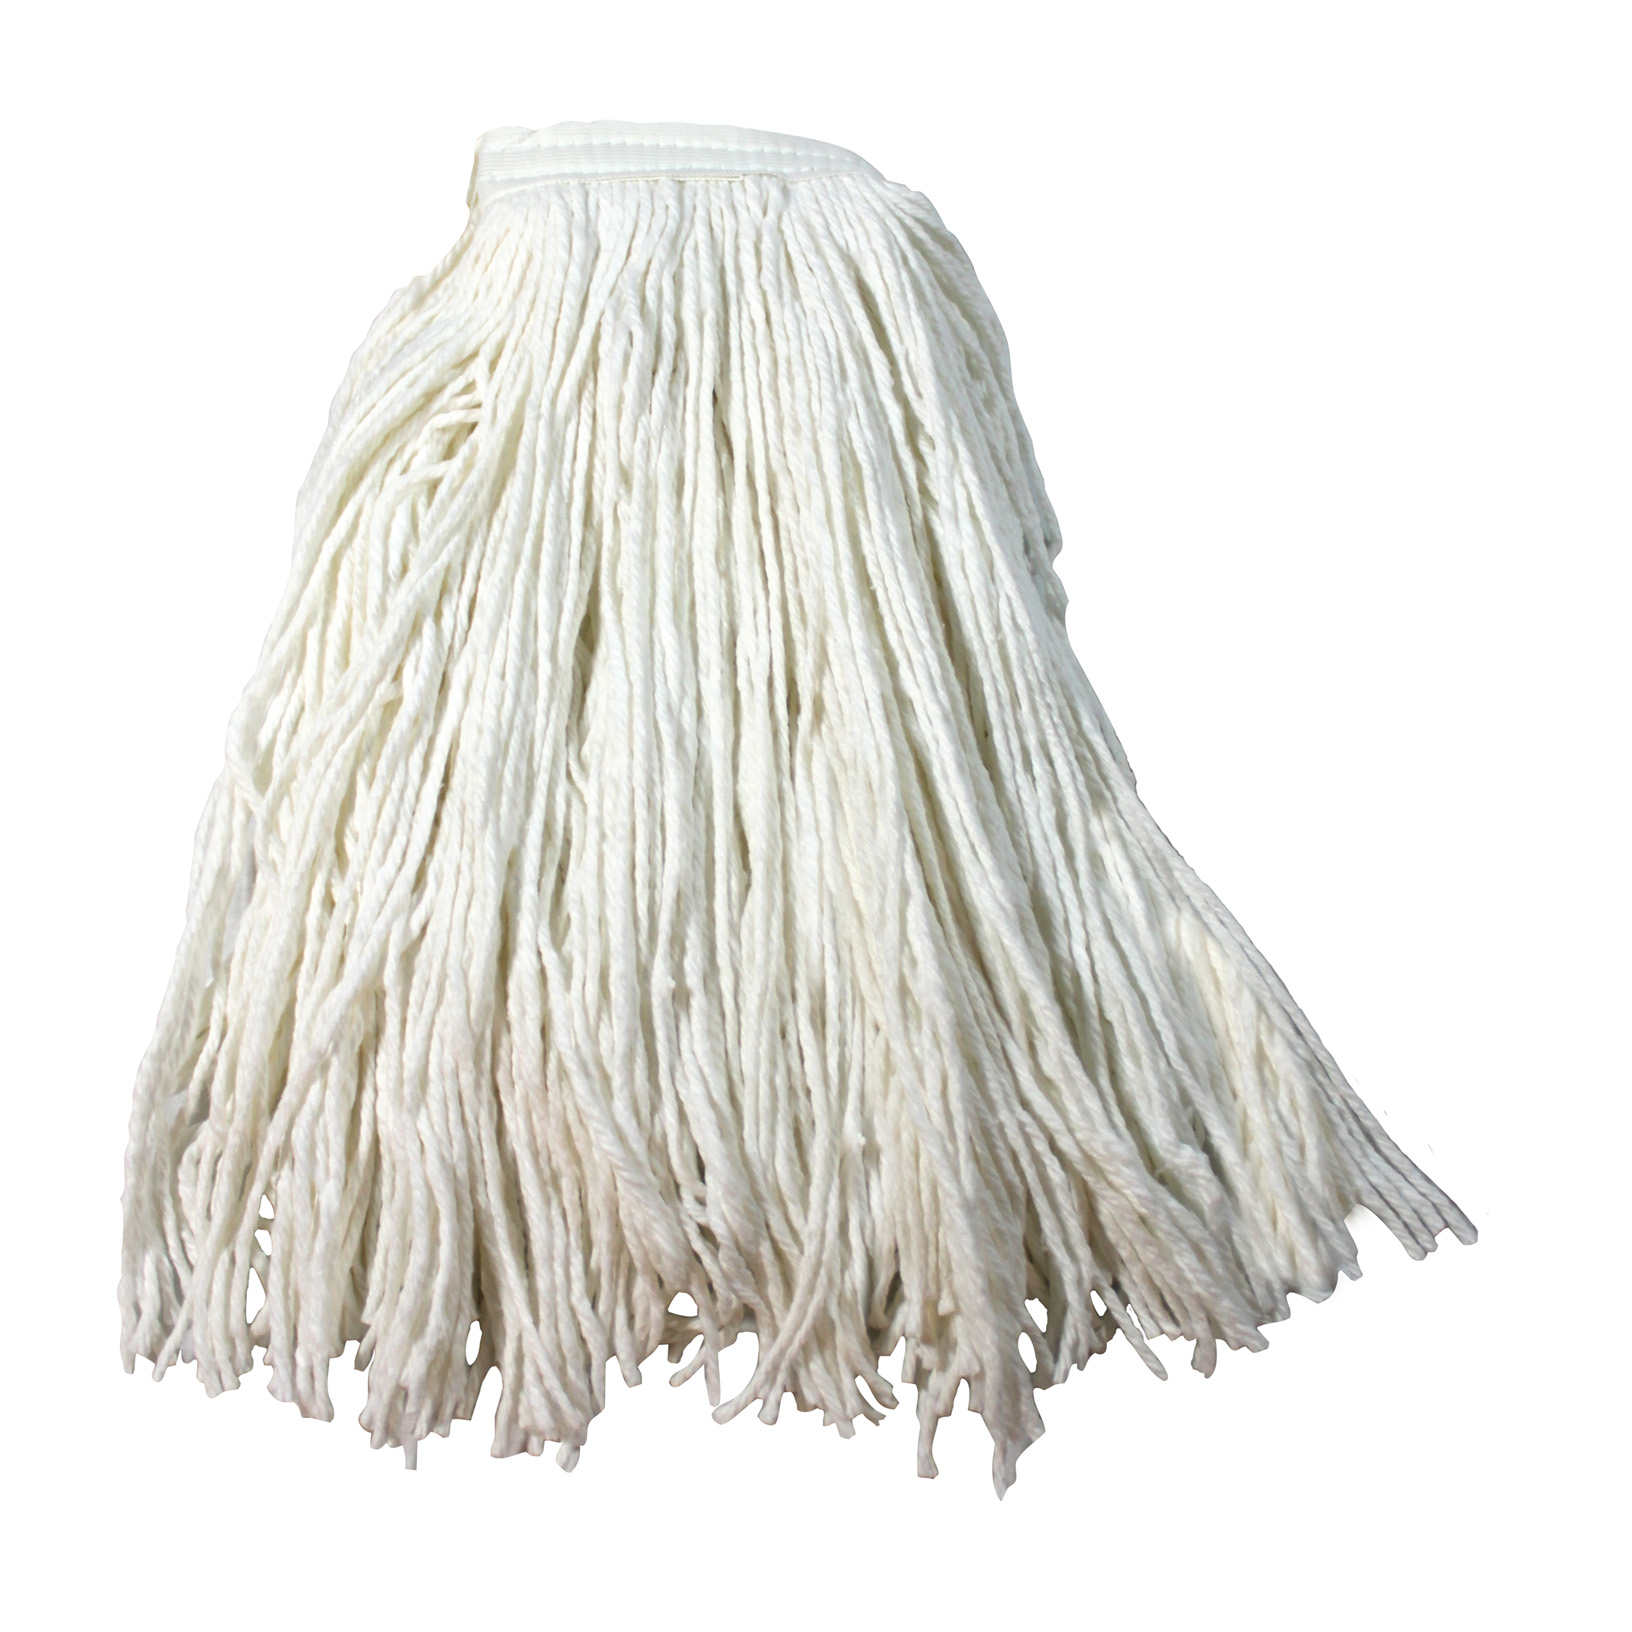 Impact Products S61116 wet mop head